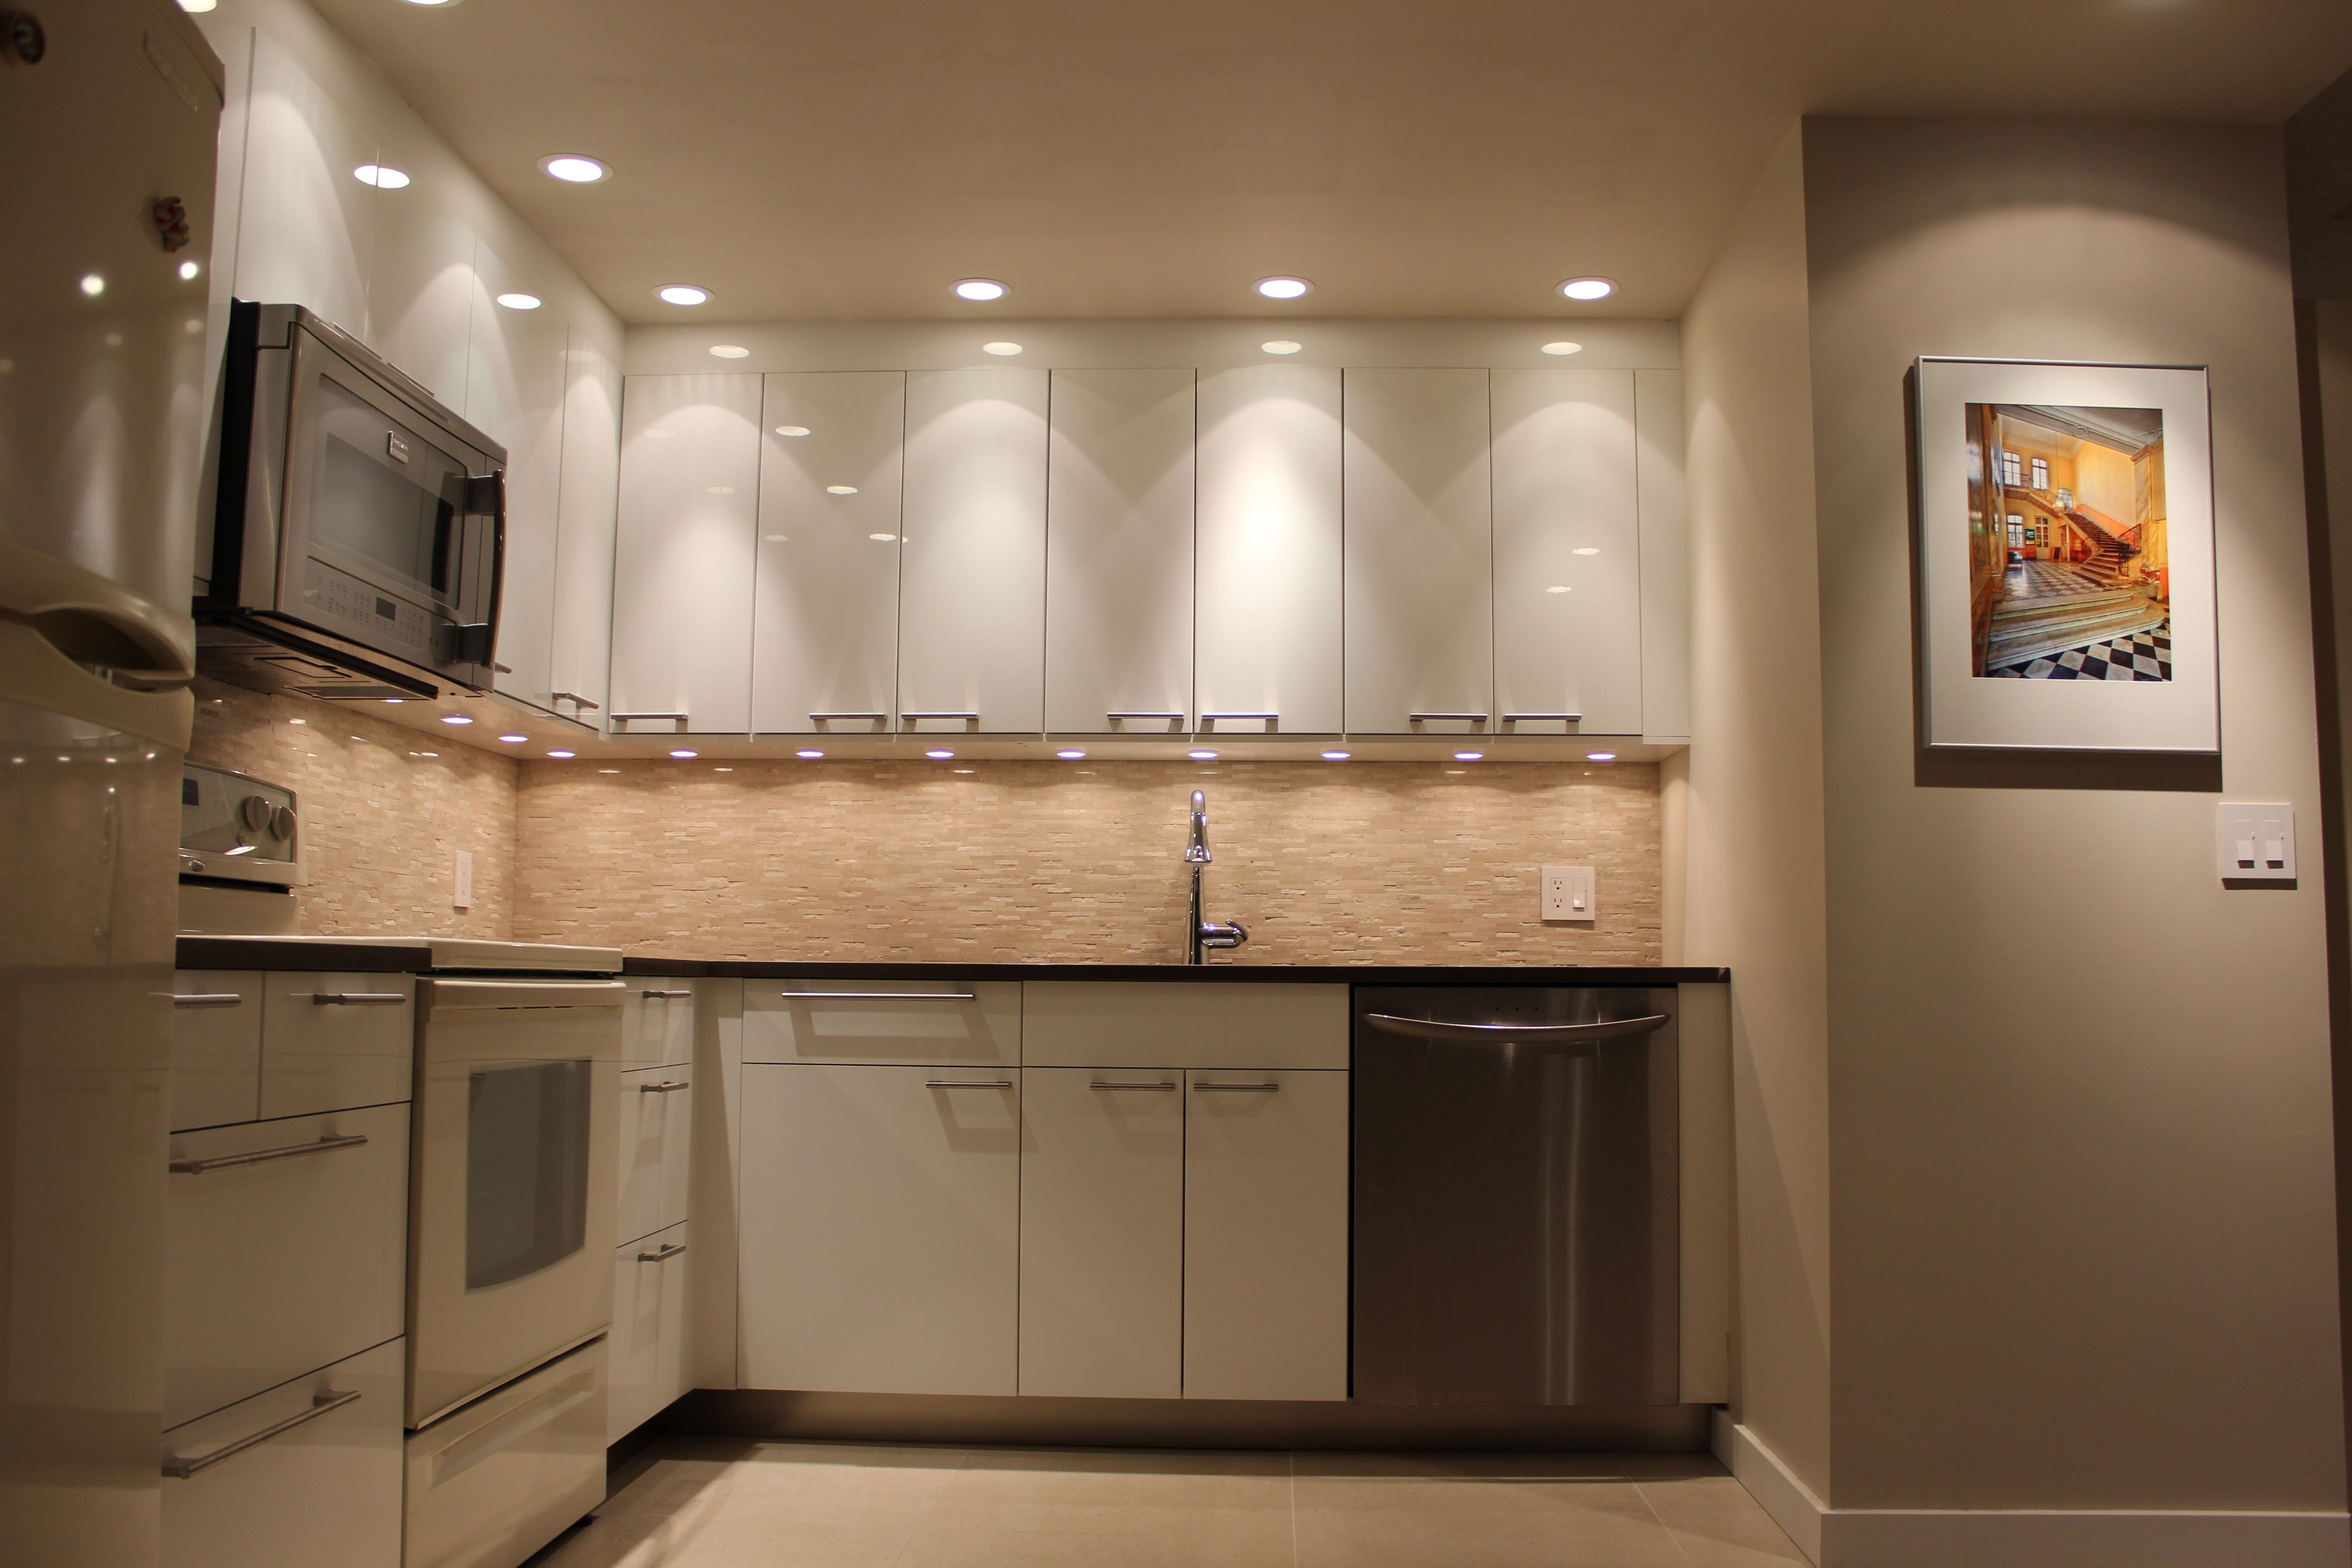 Home improvement, gloss white cabinet doors, drawers